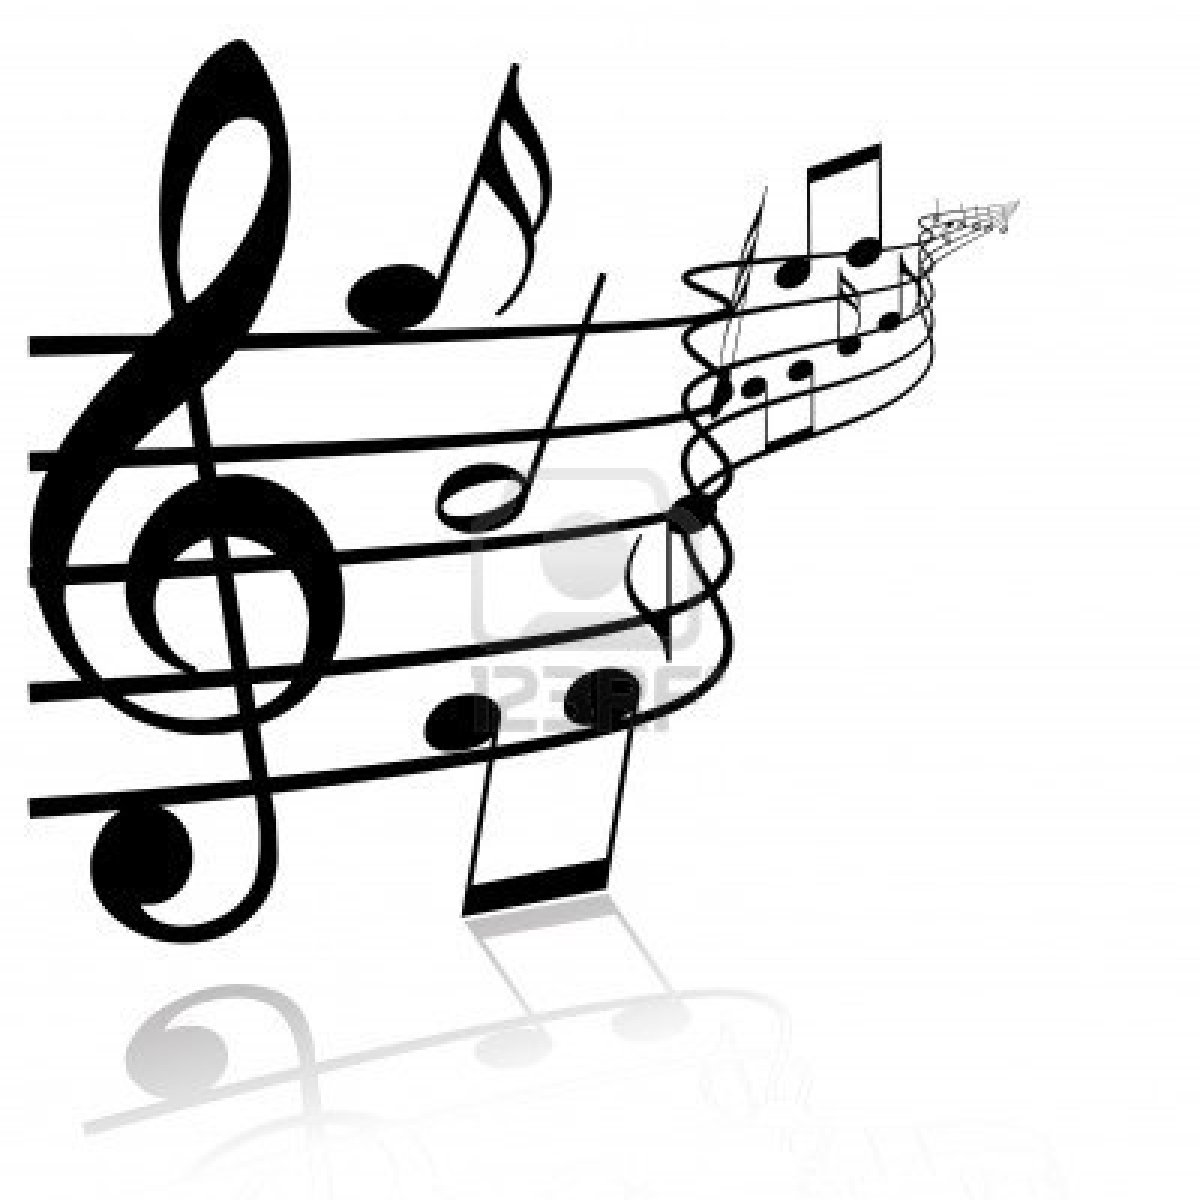 Drawn microphone music notes clipart Music Of Notes Music Free